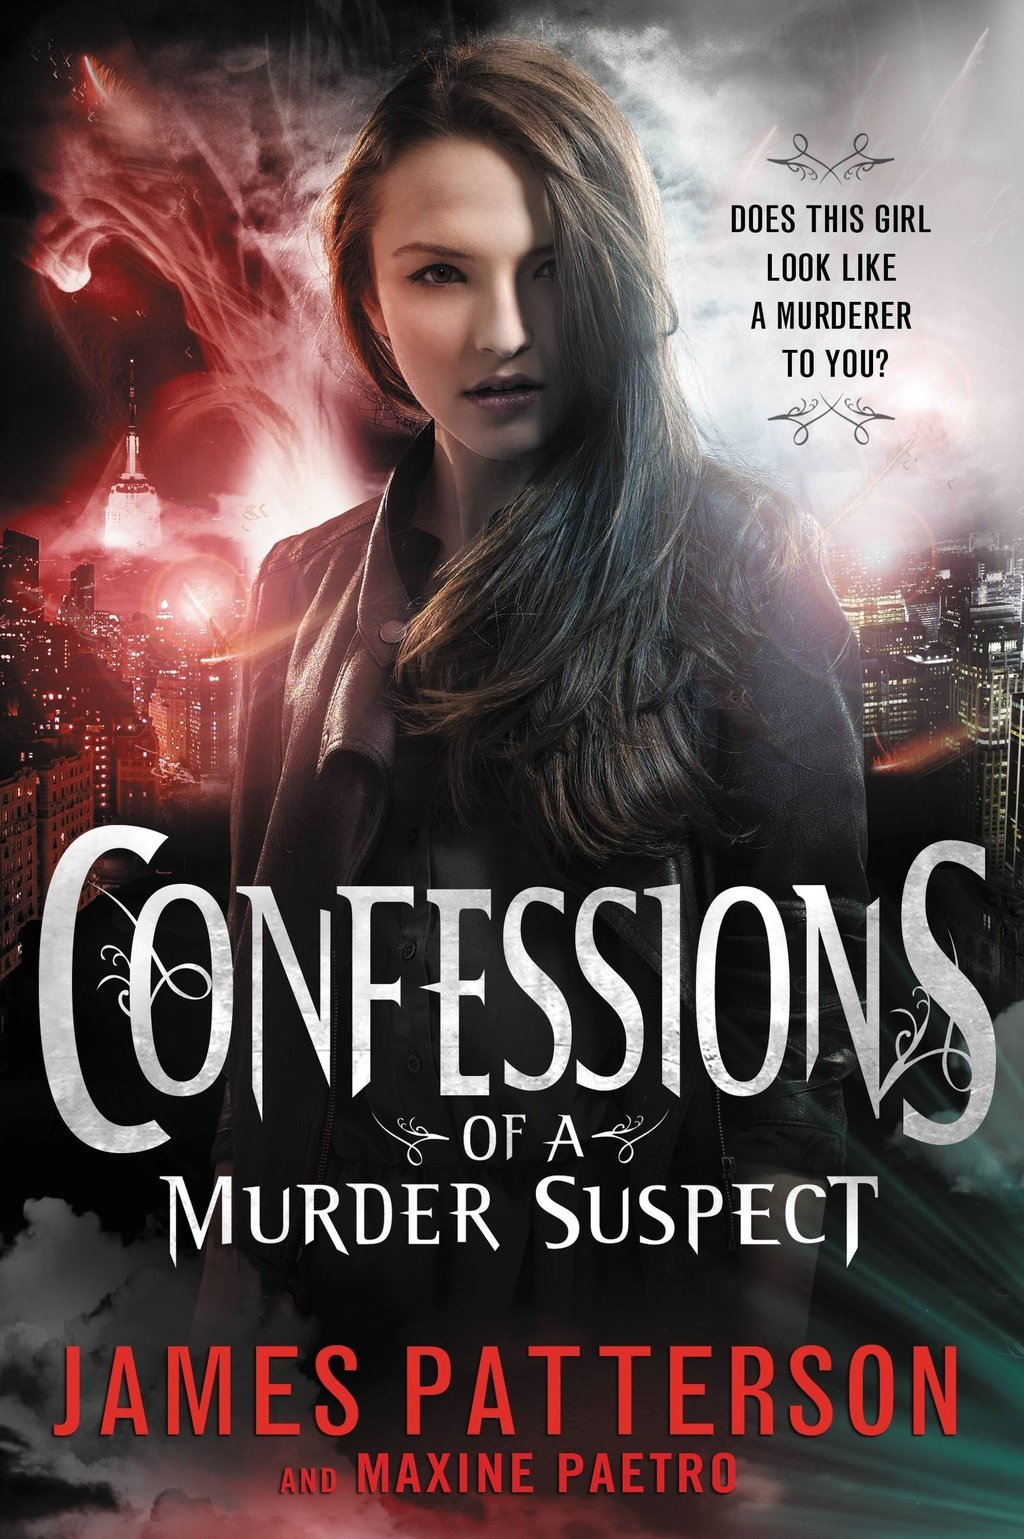 Confessions of a Murder Suspect (#1 New York Times bestseller)